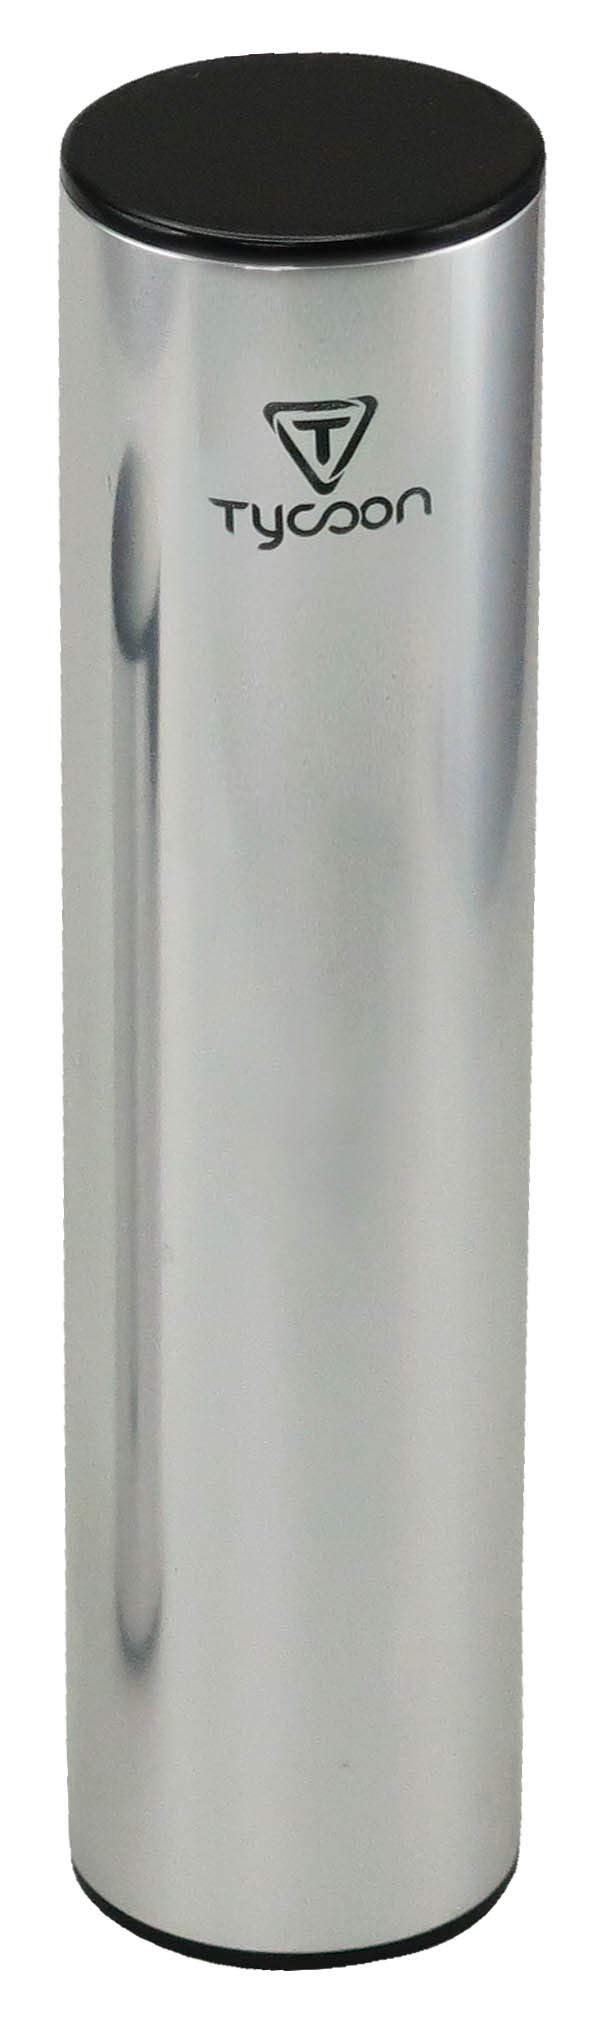 Tycoon Percussion 8 Inch Chrome Plated Aluminum Shaker